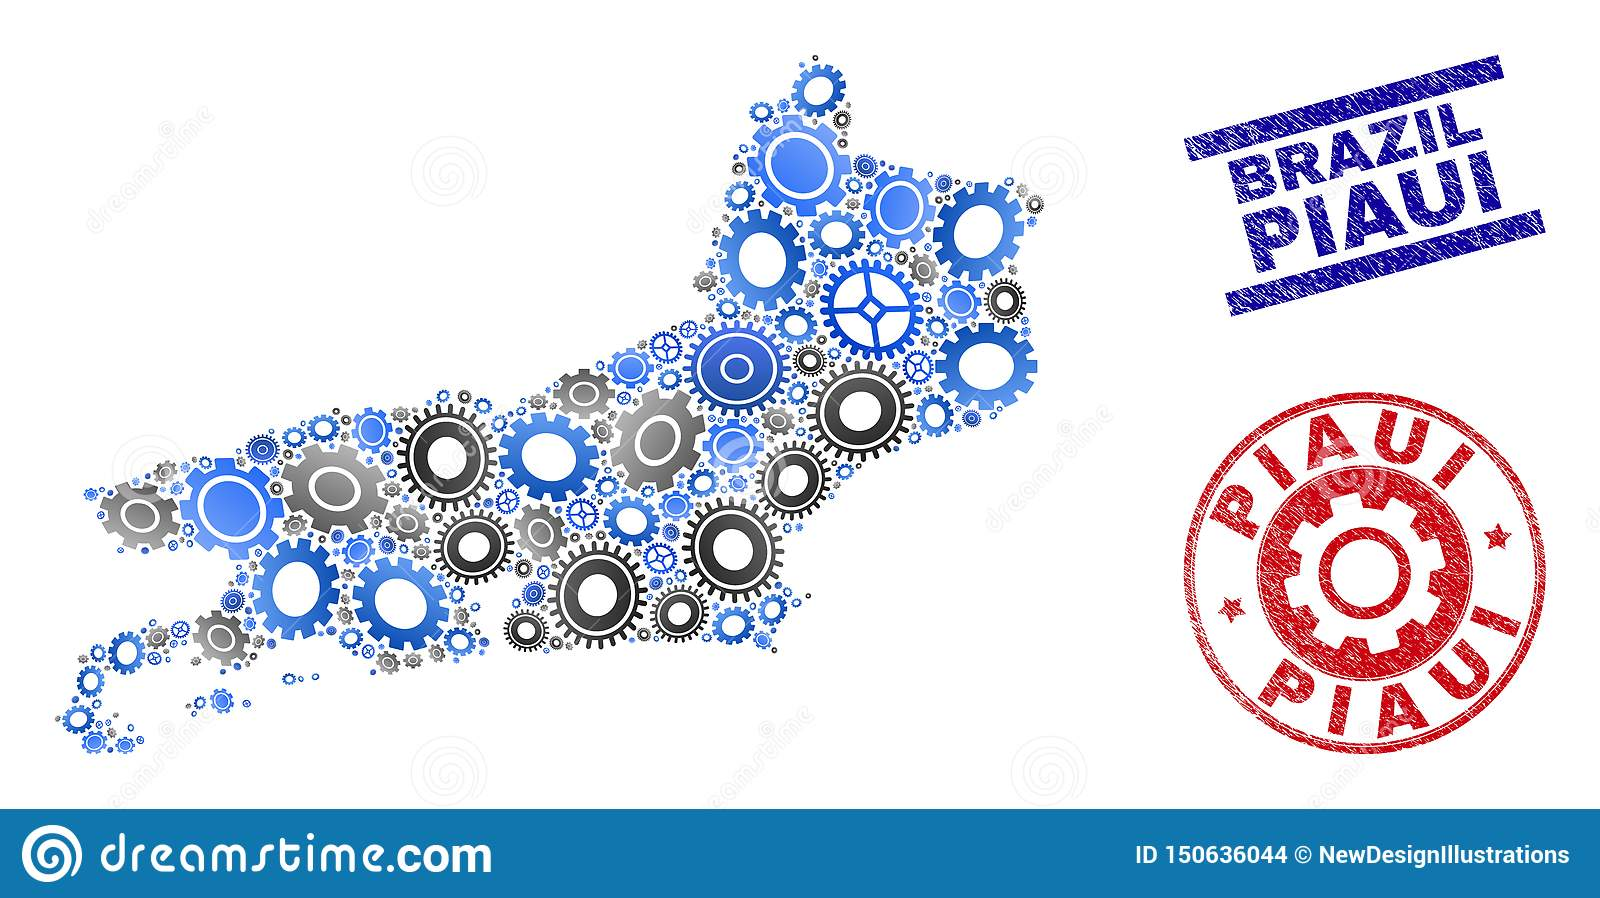 Mechanics Collage Vector Piaui State Map and Grunge Stamps